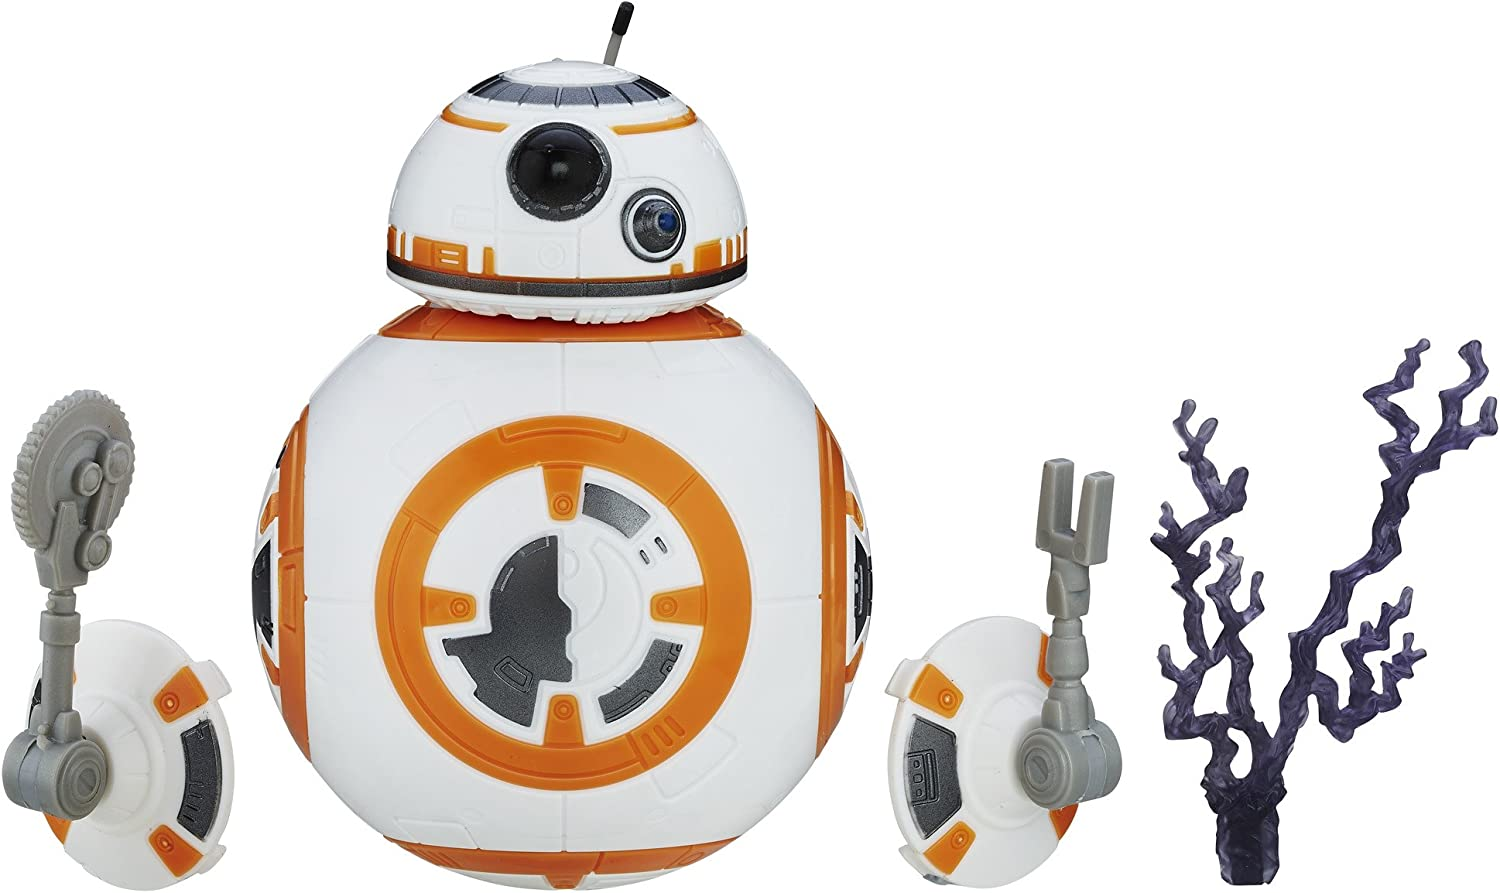 Star Wars: The Force Awakens BB-8 Figure 4 Inches